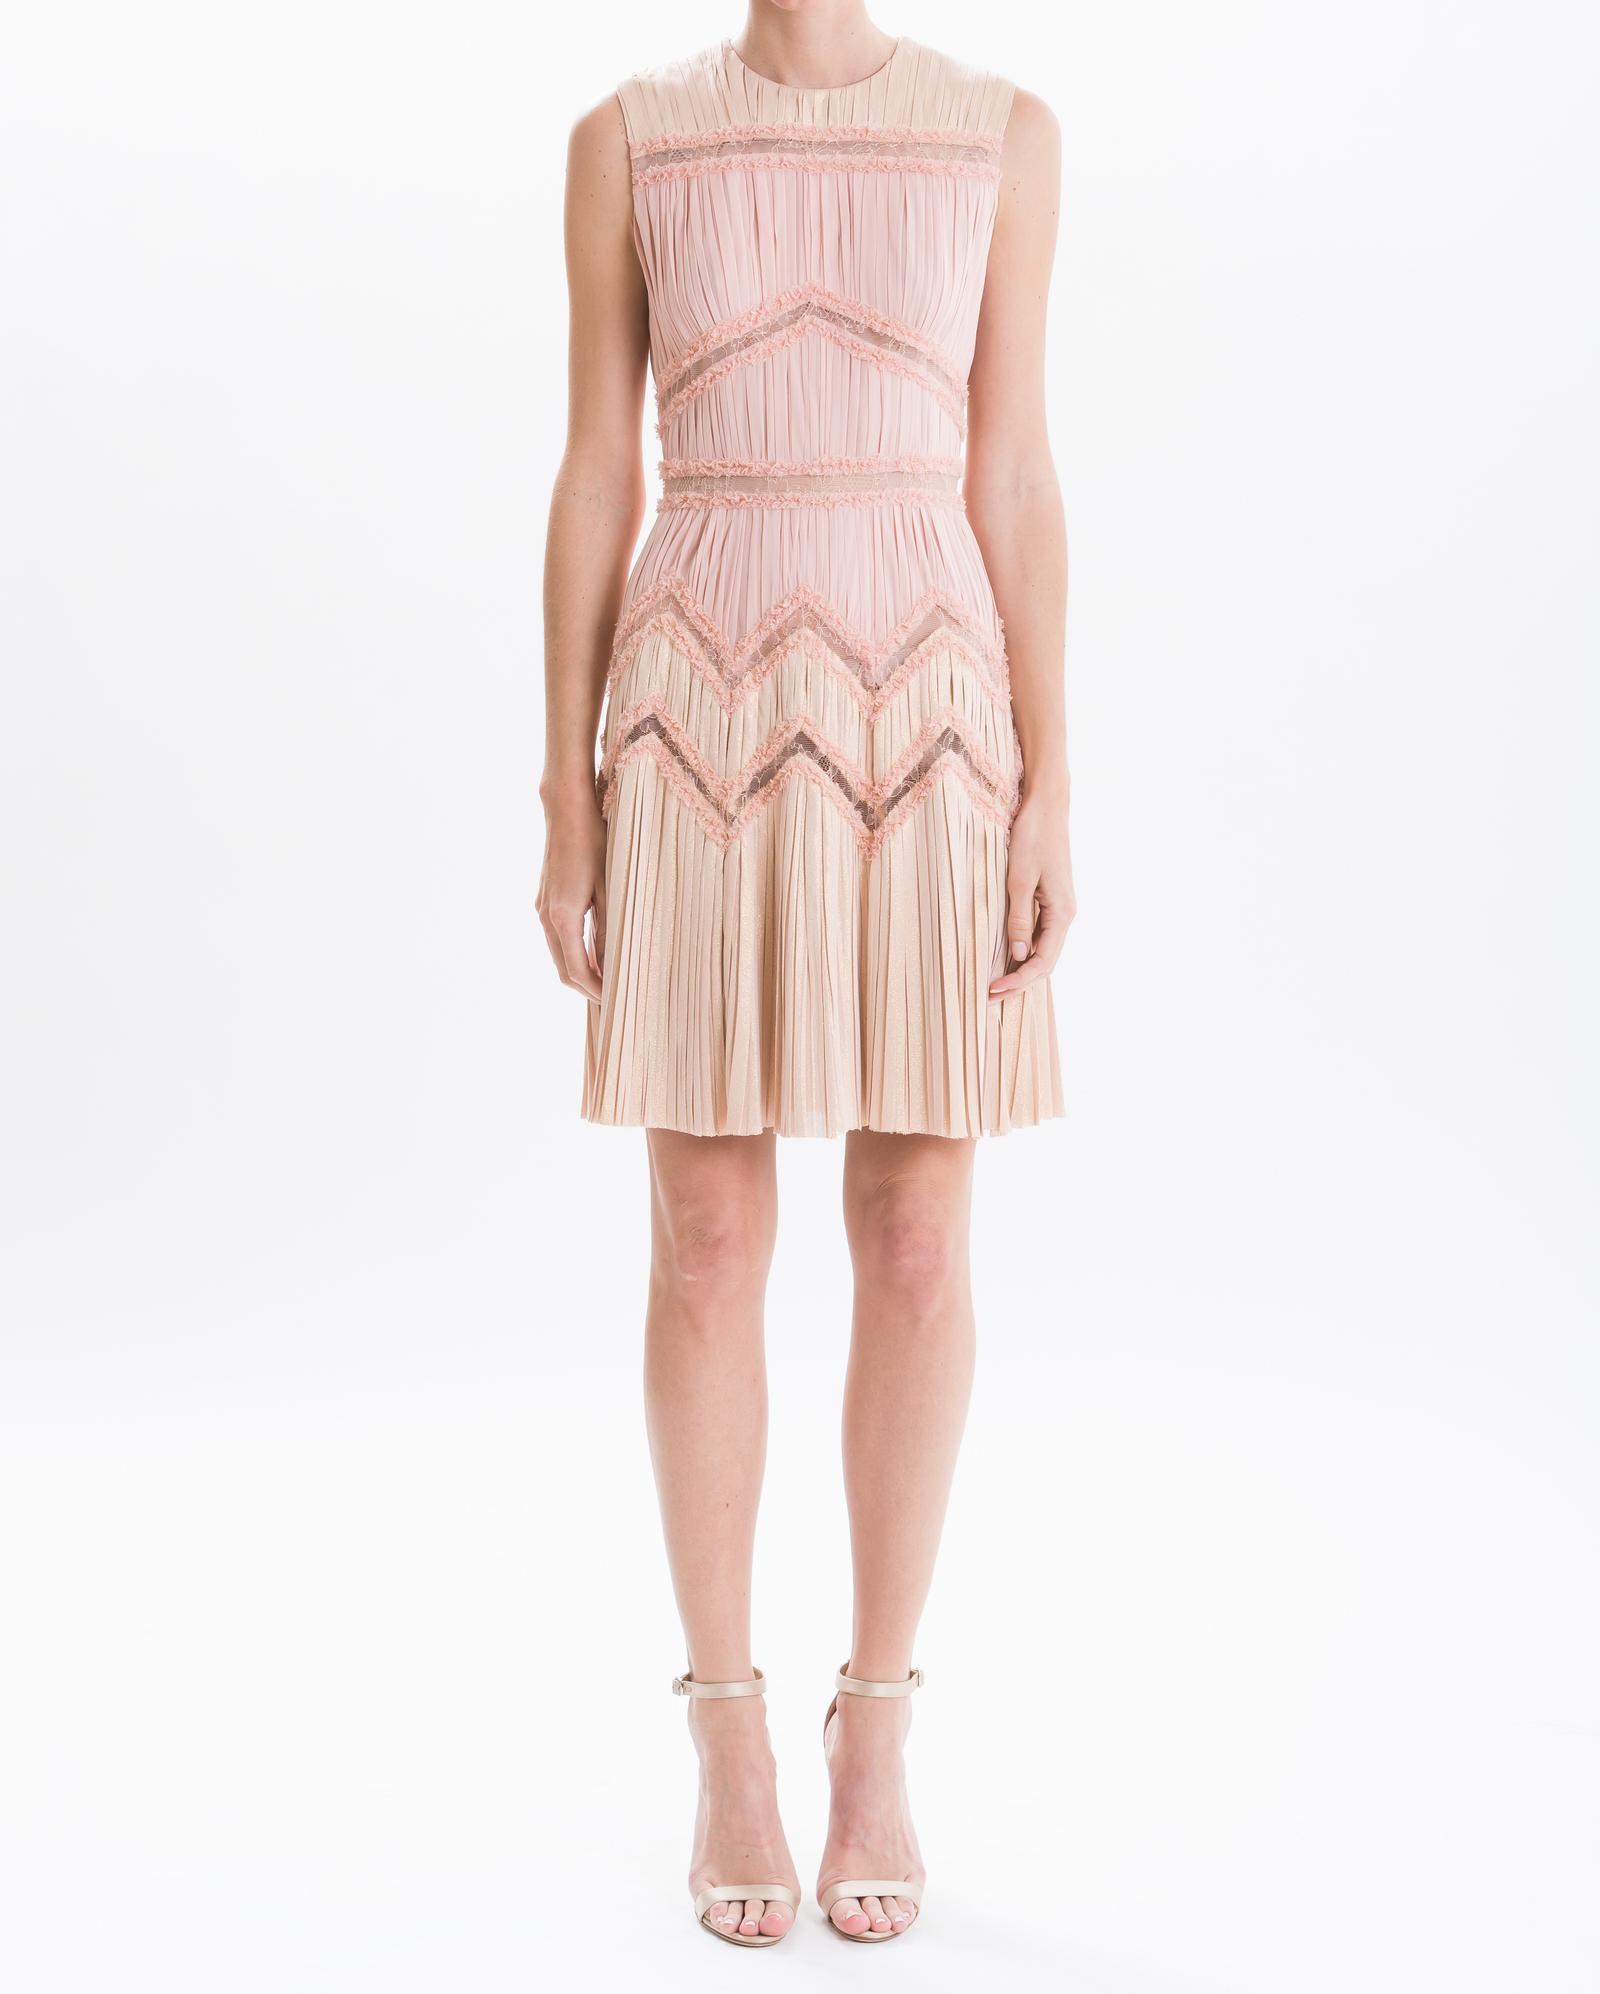 Blush/Gold Lurex Hand-Pleated Cocktail Dress – J. Mendel